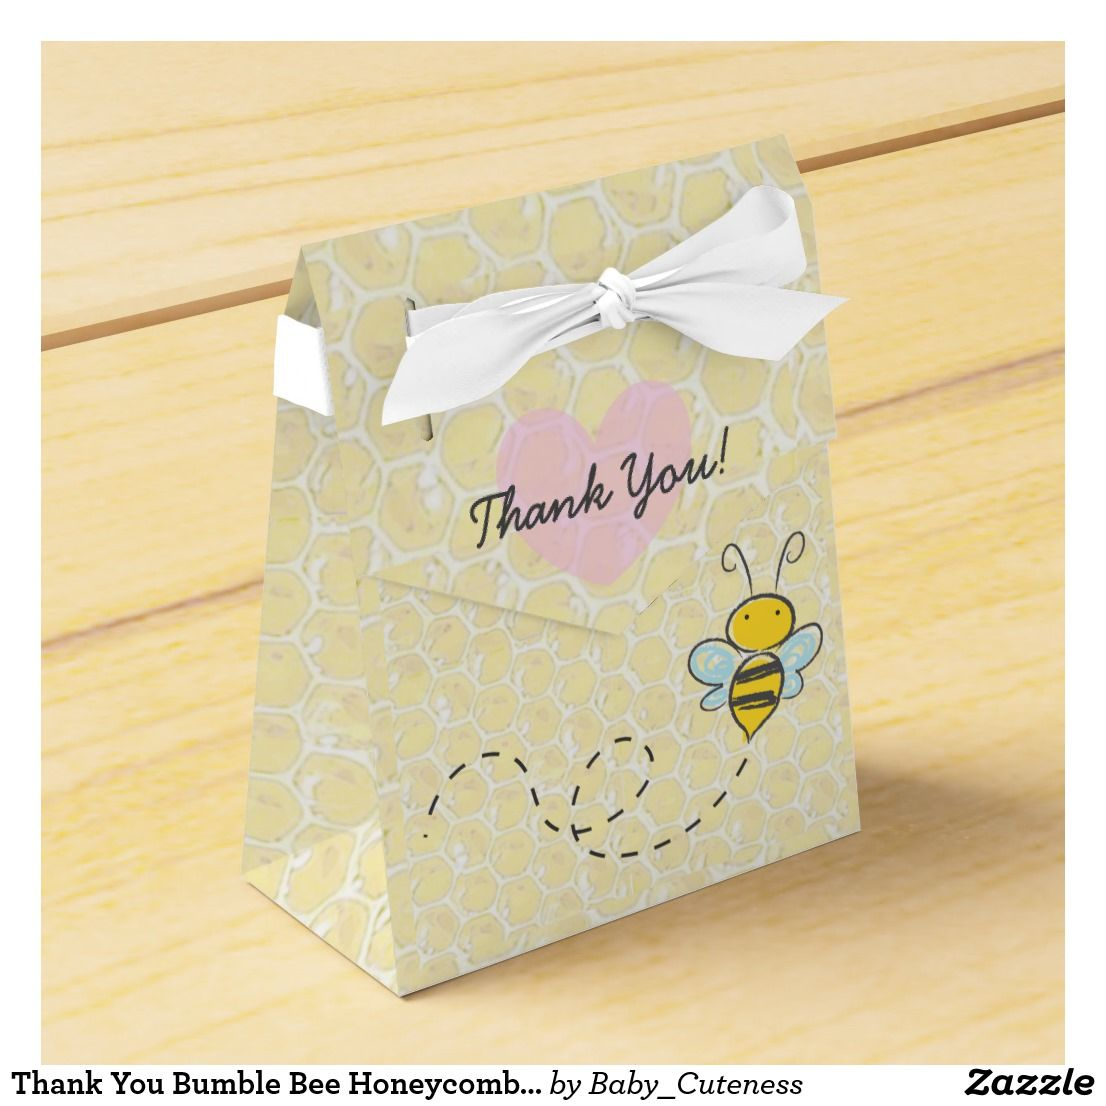 Thank You Bumble Bee Honeycomb Candy Favor Box | Candy favors